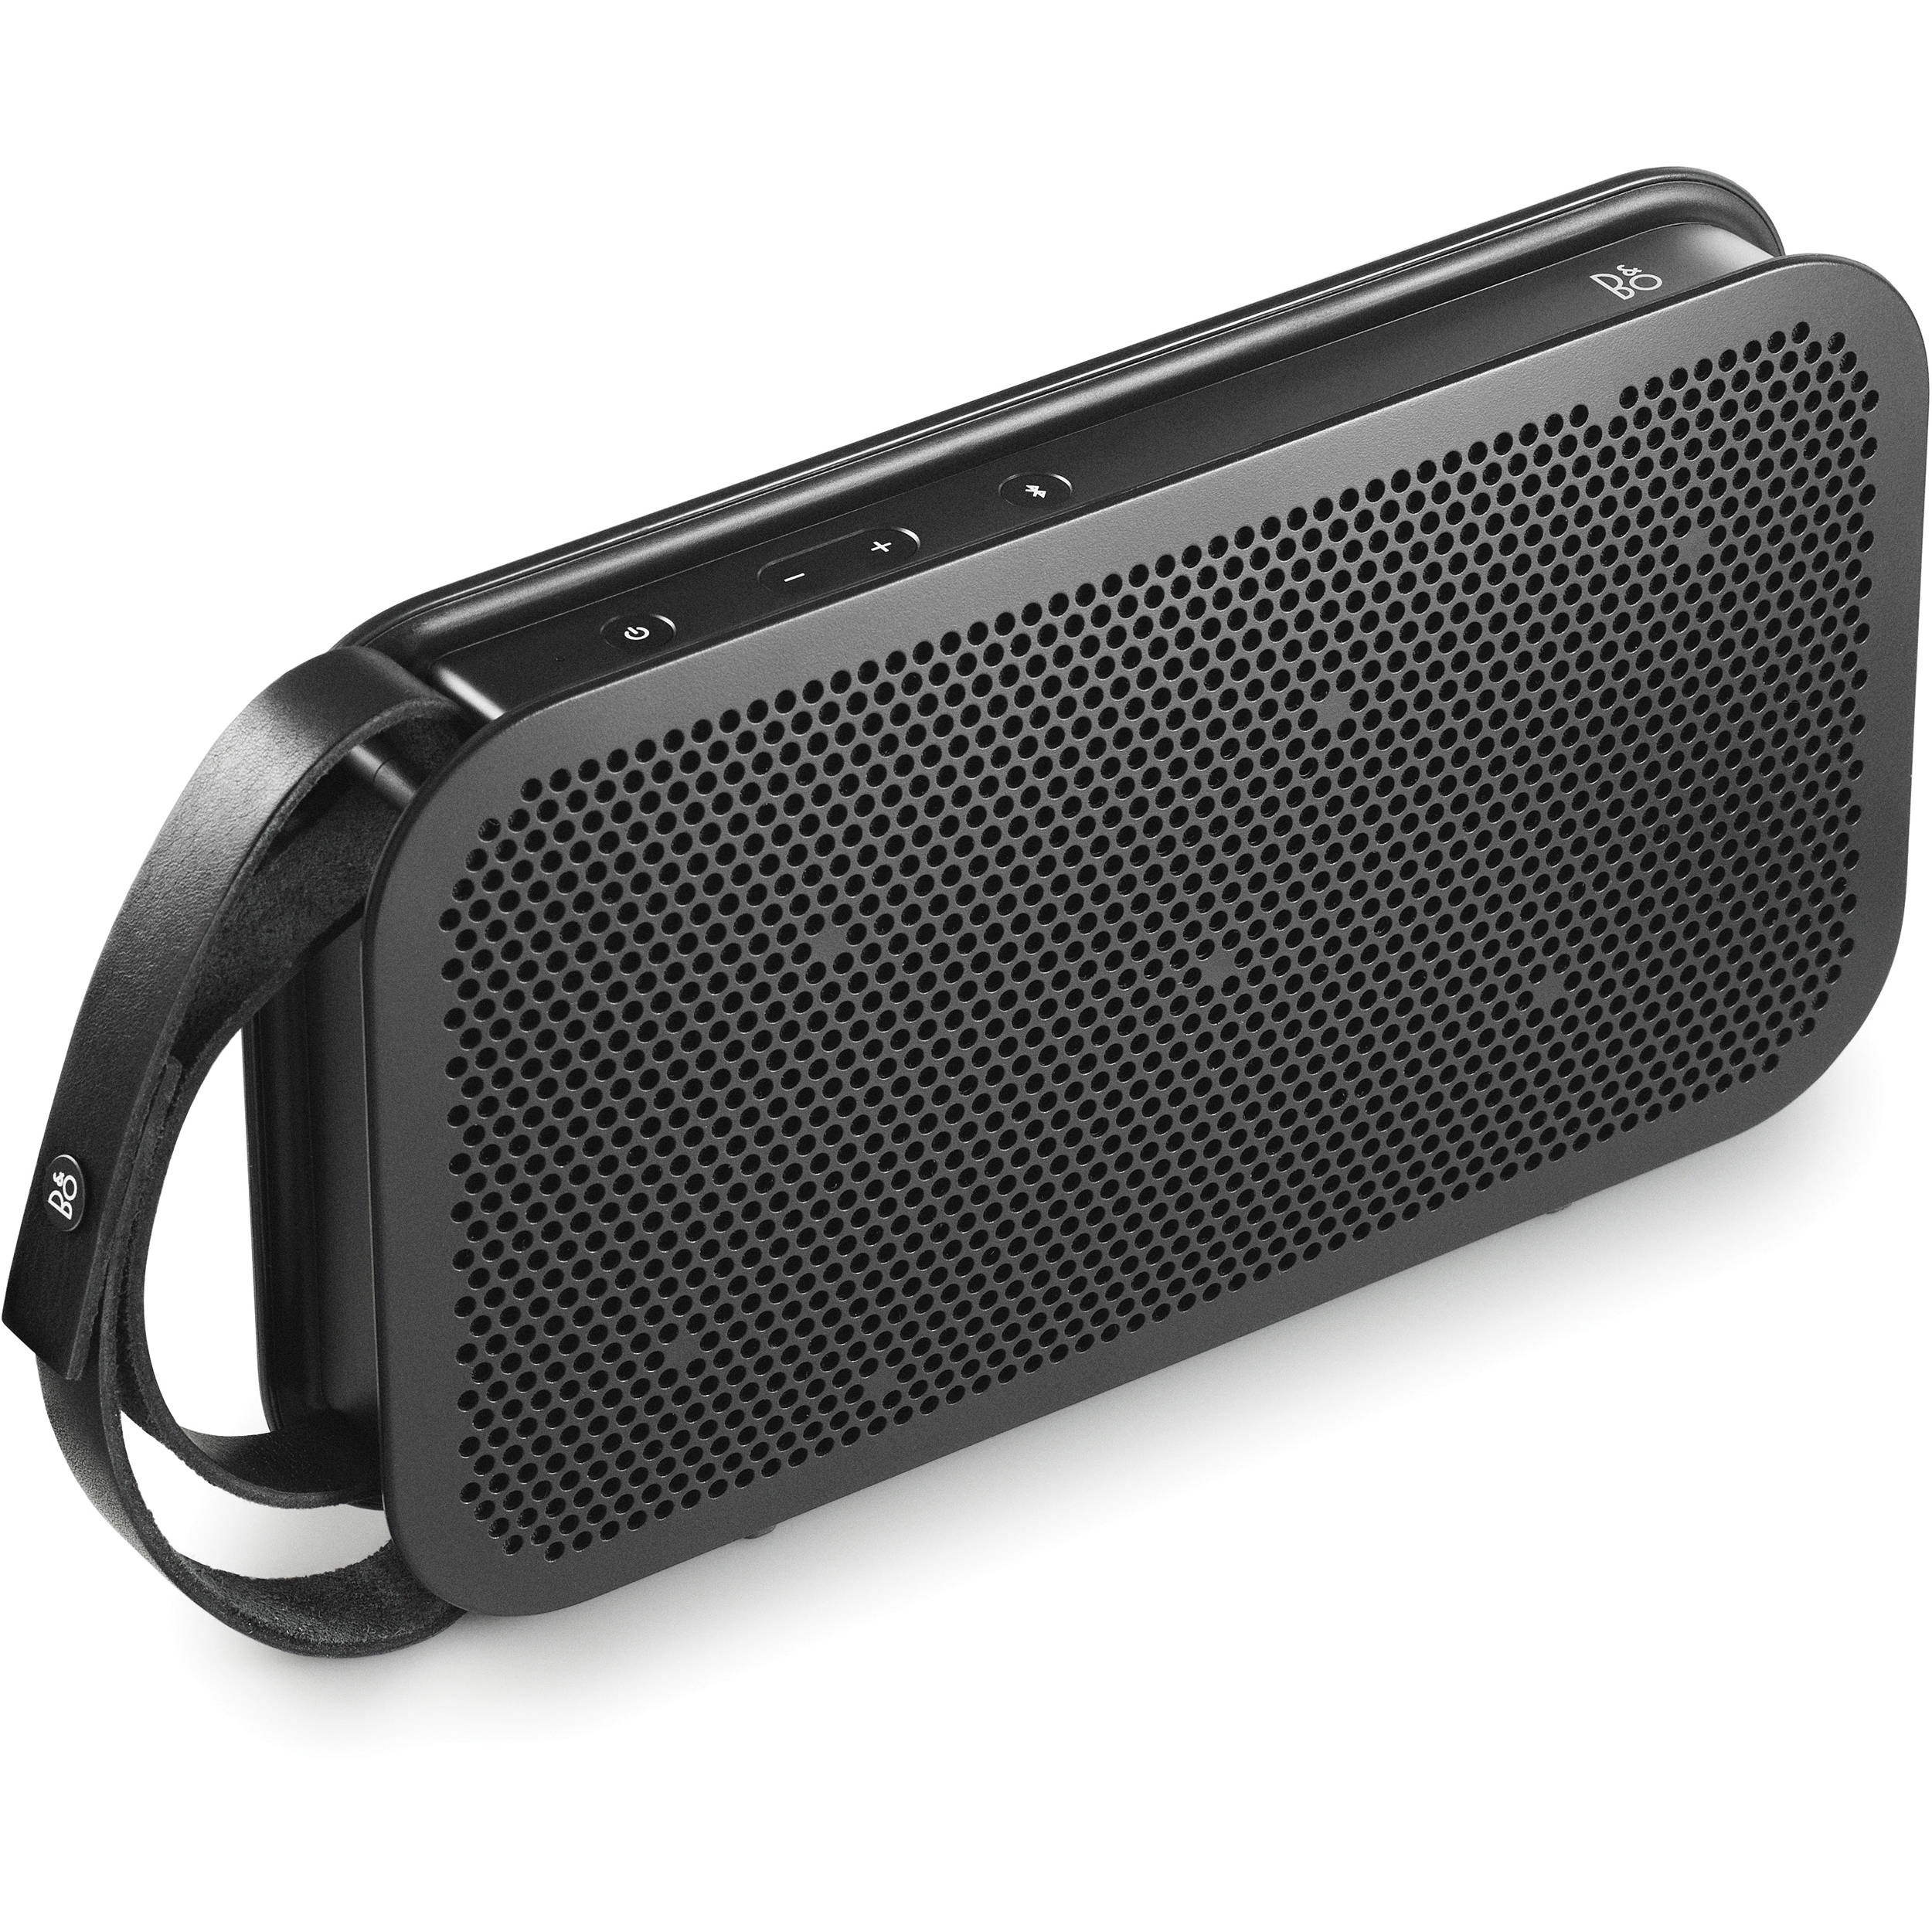 Joystick Bluetooth Seisa B O Beoplay P2 Portable Bluetooth Speaker Best Fm Bluetooth Transmitter For Older Cars Km19 Mag Mount Insignia Portable Bluetooth Speaker Ns Cspbt03: B&O PLAY By Bang & Olufsen Beoplay A2 Bluetooth Speaker